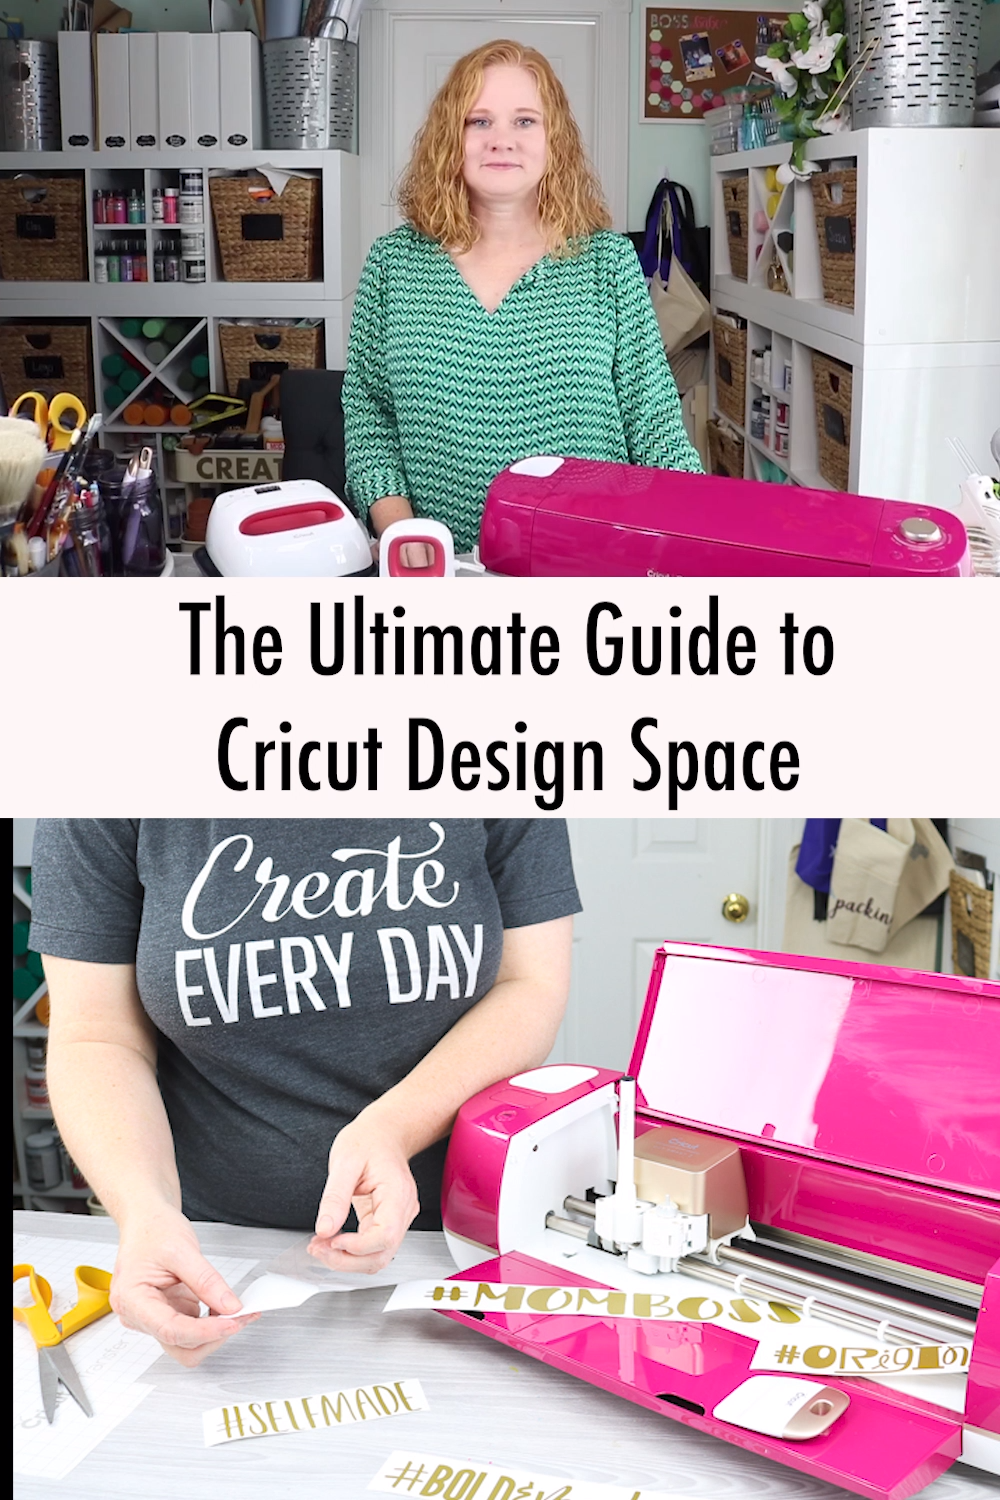 Are you new to Cricut? We have a free printable guide that will walk you through everything you need to know about Cricut Design Space. Then you can follow along with our YouTube channel to learn even more! #cricut #cricutcreated #cricutmade #cricutdesignspace #designspace #cricutexplore #cricutmaker #cricutmachine #cricuttutorial #cricuthowto